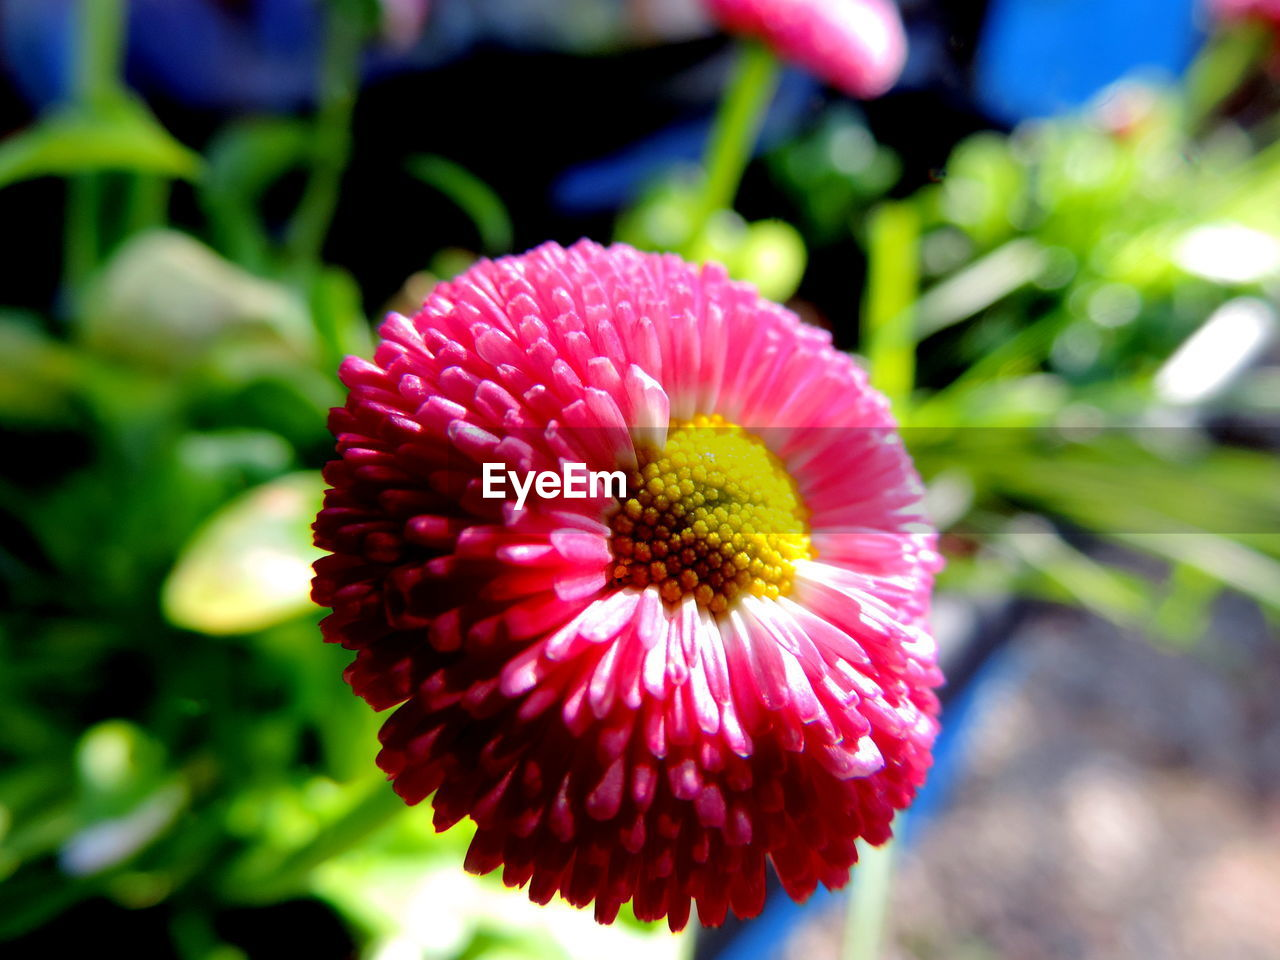 flowering plant, flower, plant, beauty in nature, flower head, fragility, vulnerability, freshness, inflorescence, petal, growth, close-up, focus on foreground, day, nature, pink color, no people, pollen, outdoors, gazania